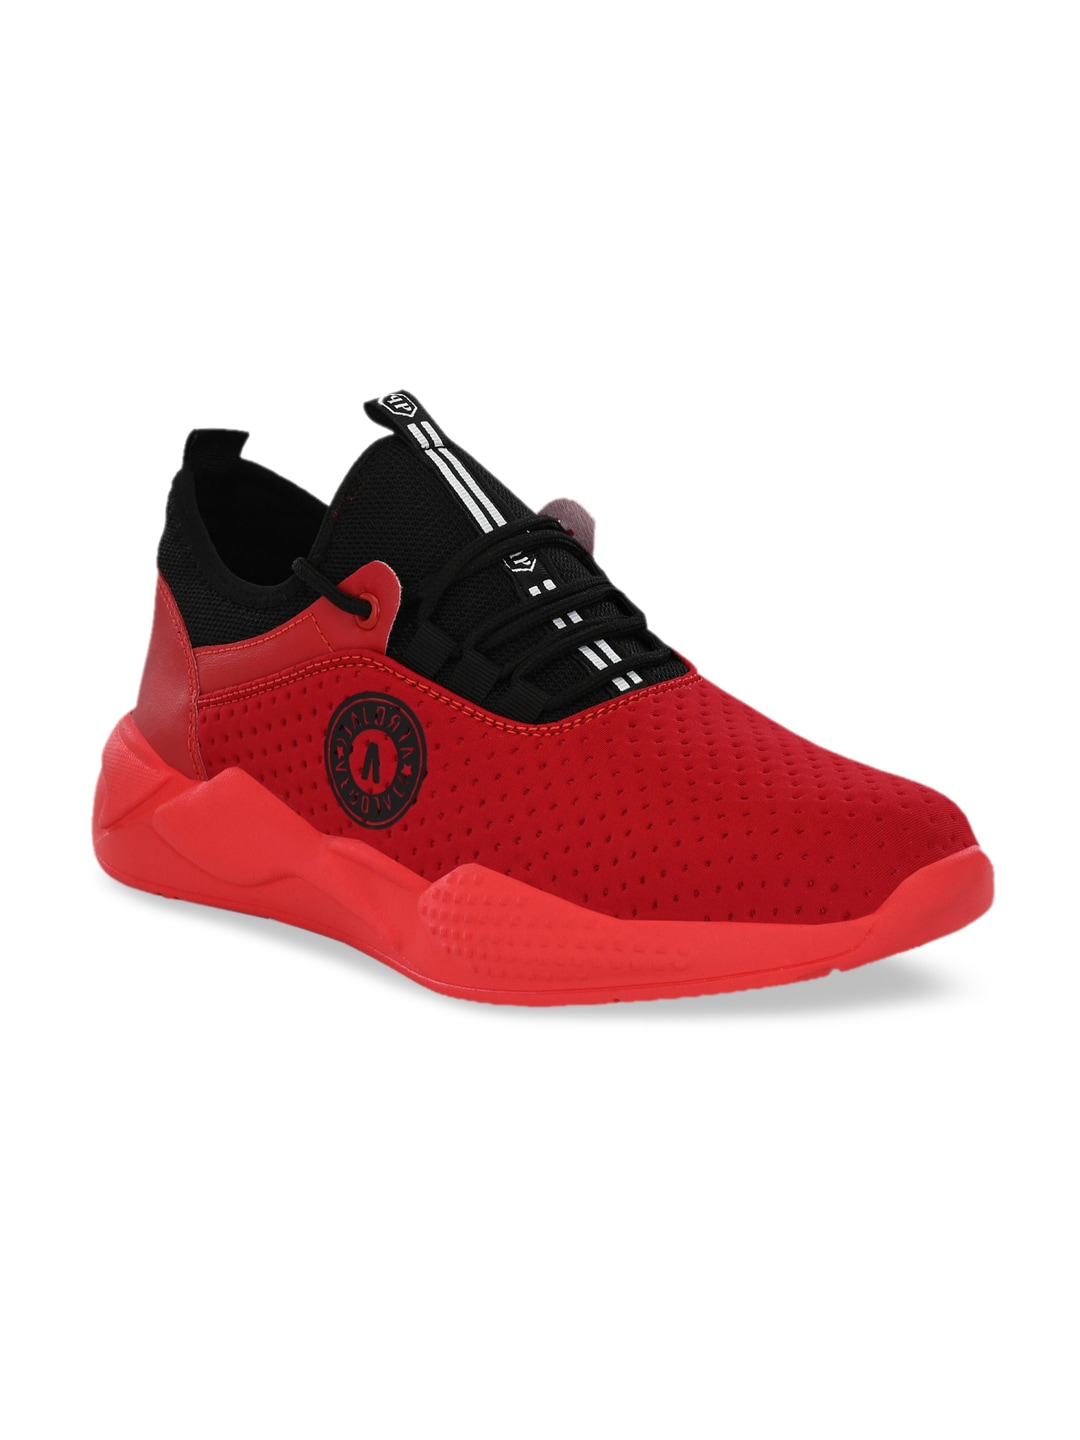 AfroJack Men Red Mid-Top Training or Gym Shoes